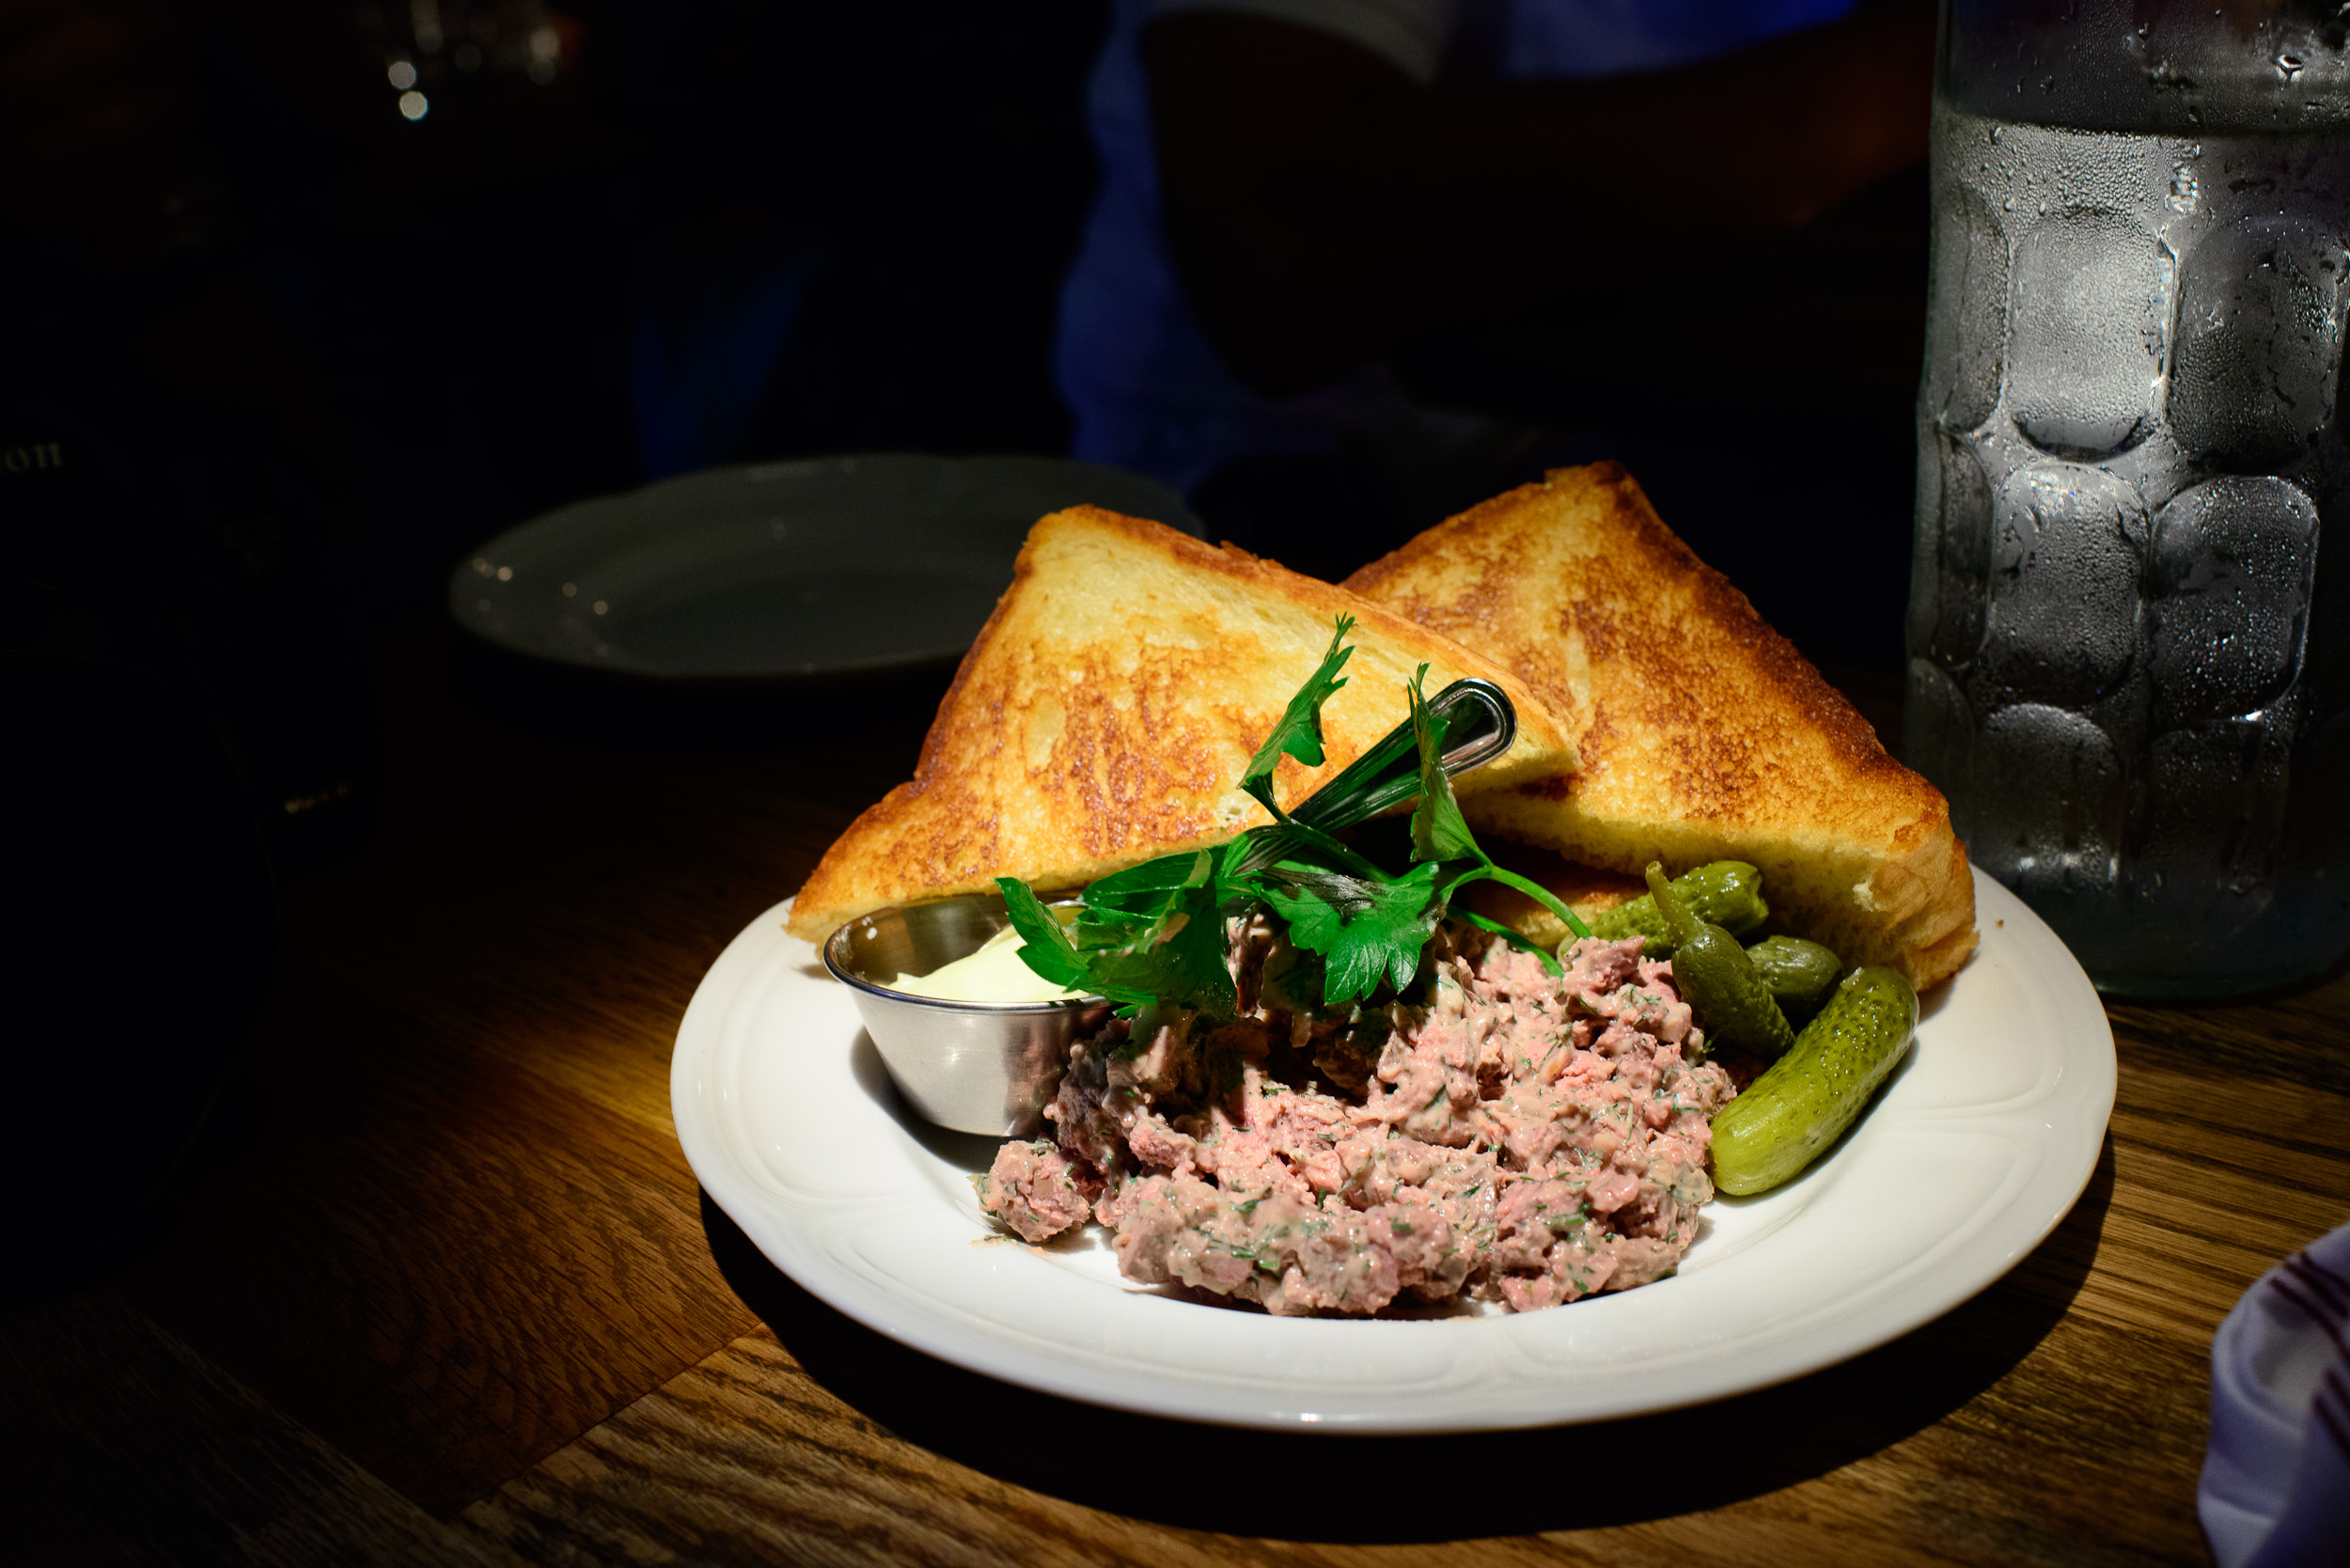 Chopped chicken liver, salted butter and toast ($10.95)